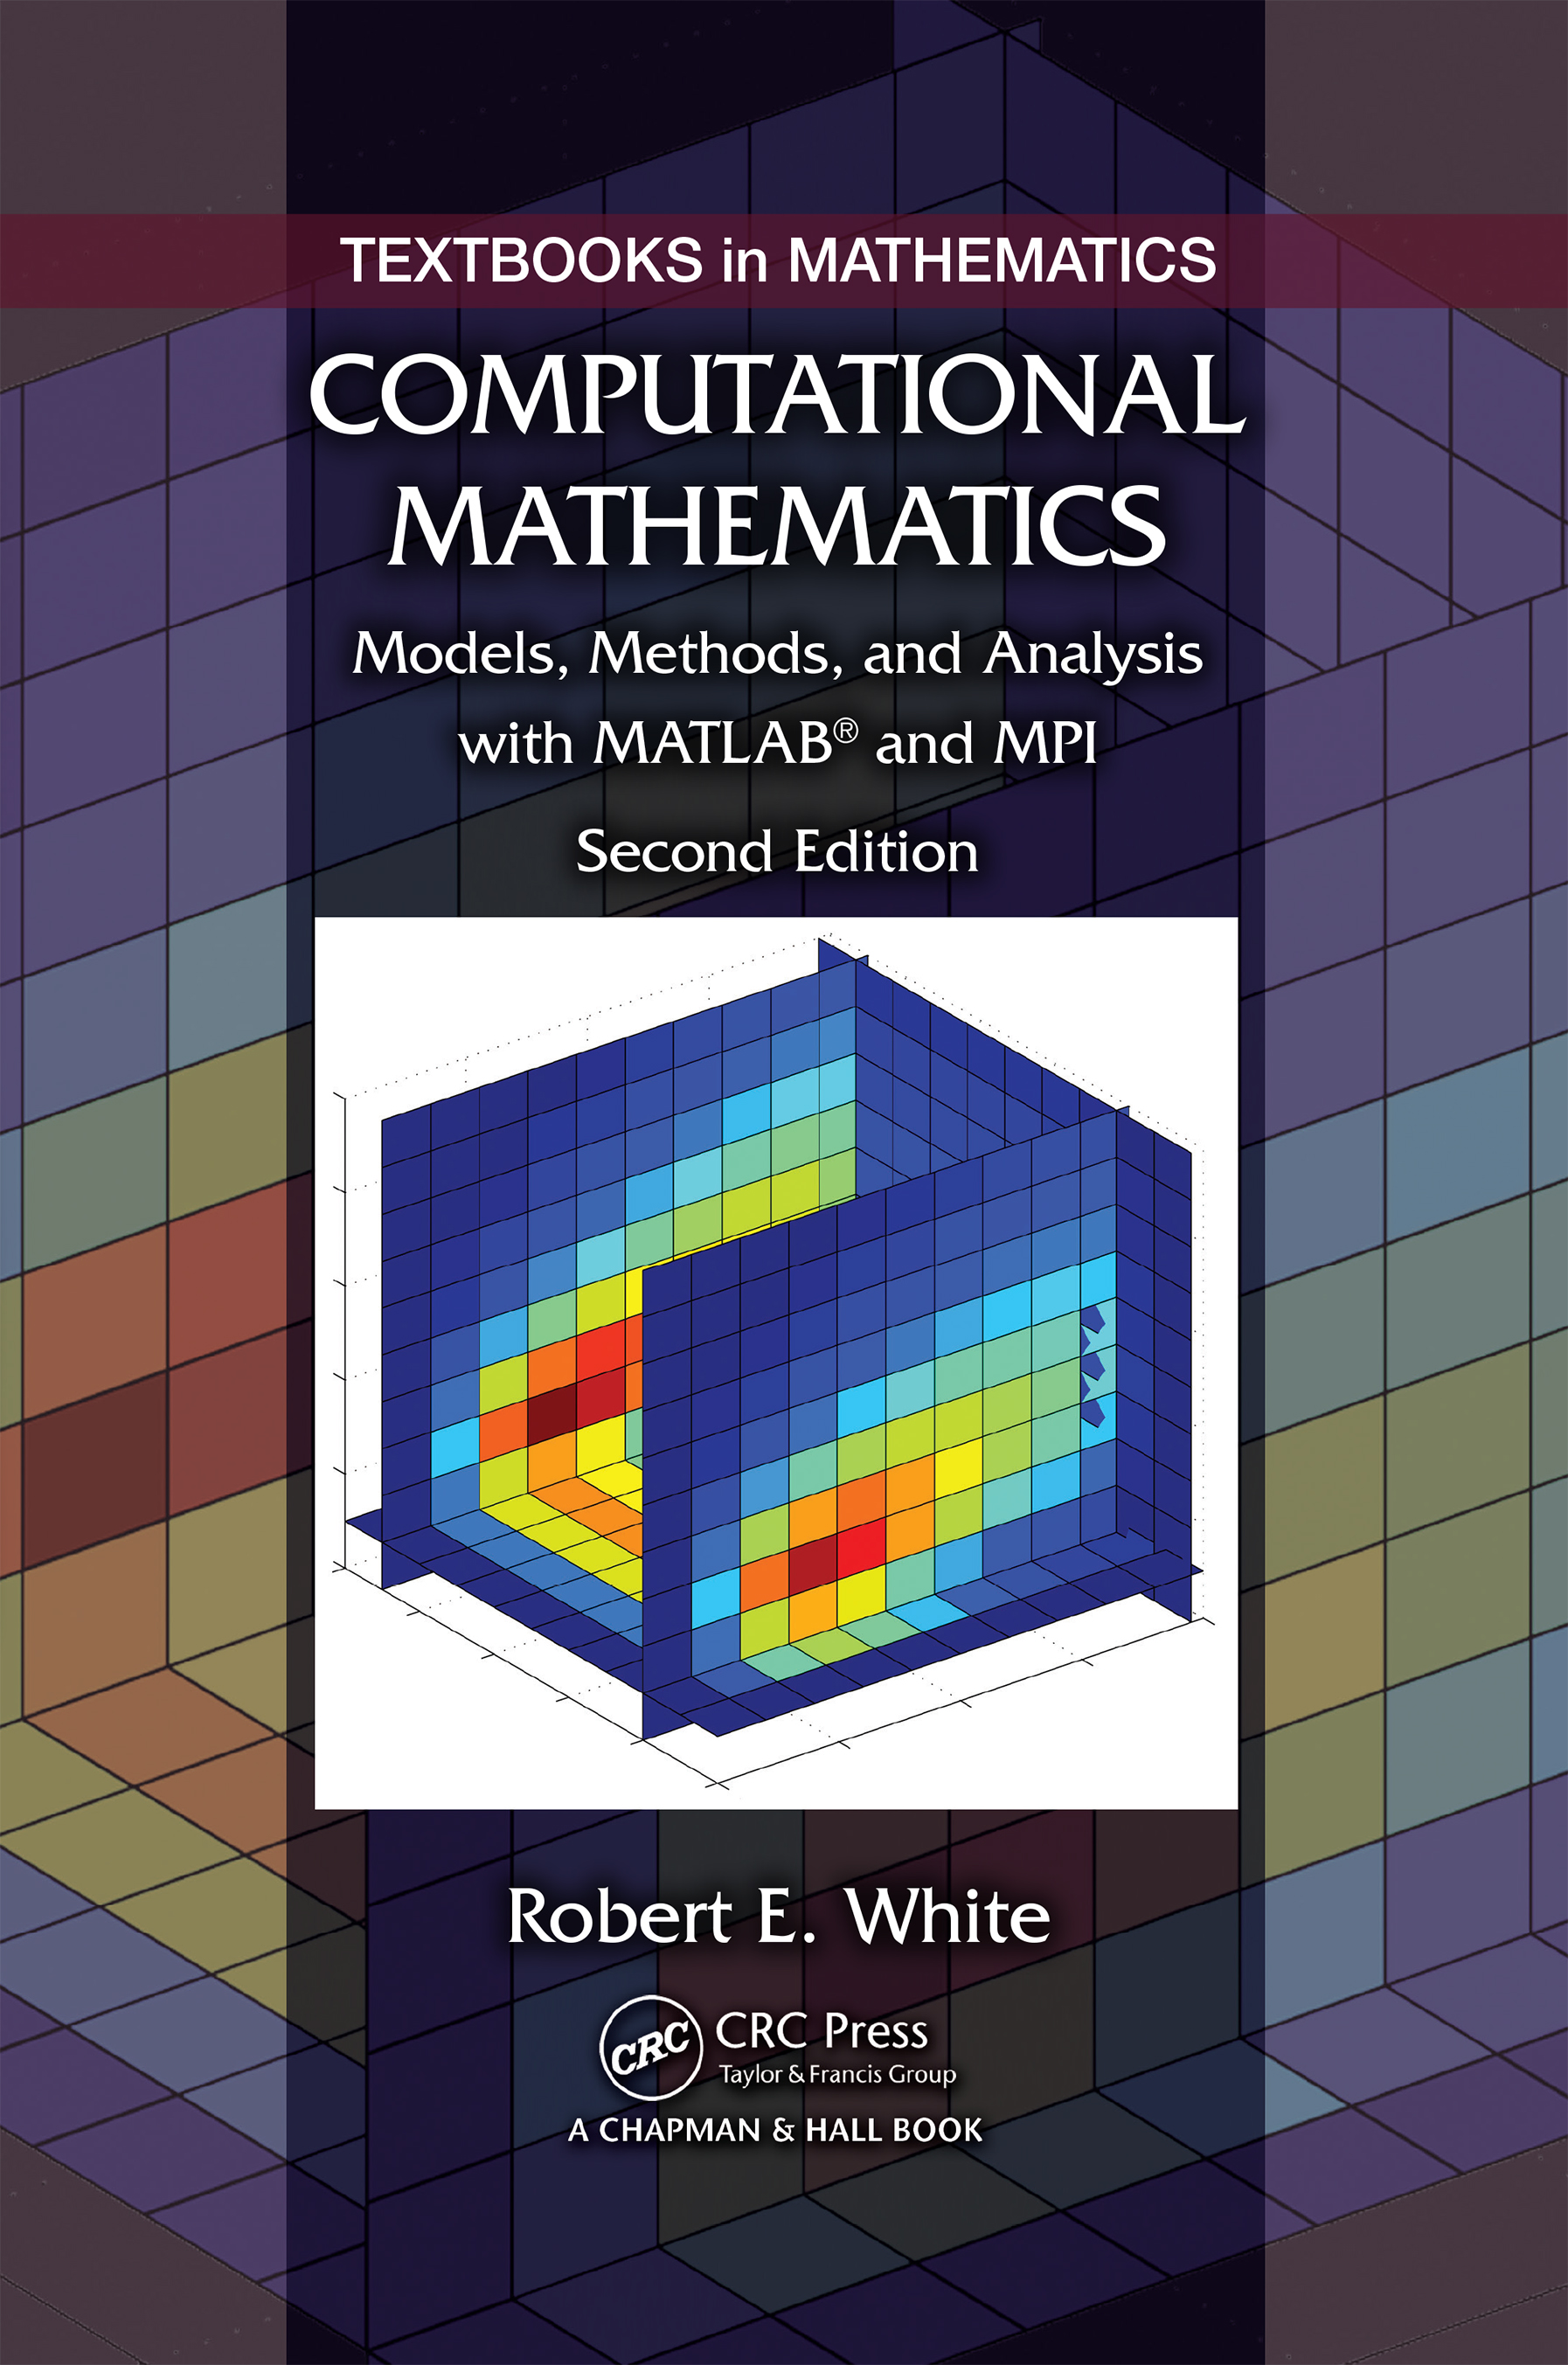 Computational Mathematics: Models, Methods, and Analysis with MATLAB® and MPI, Second Edition book cover